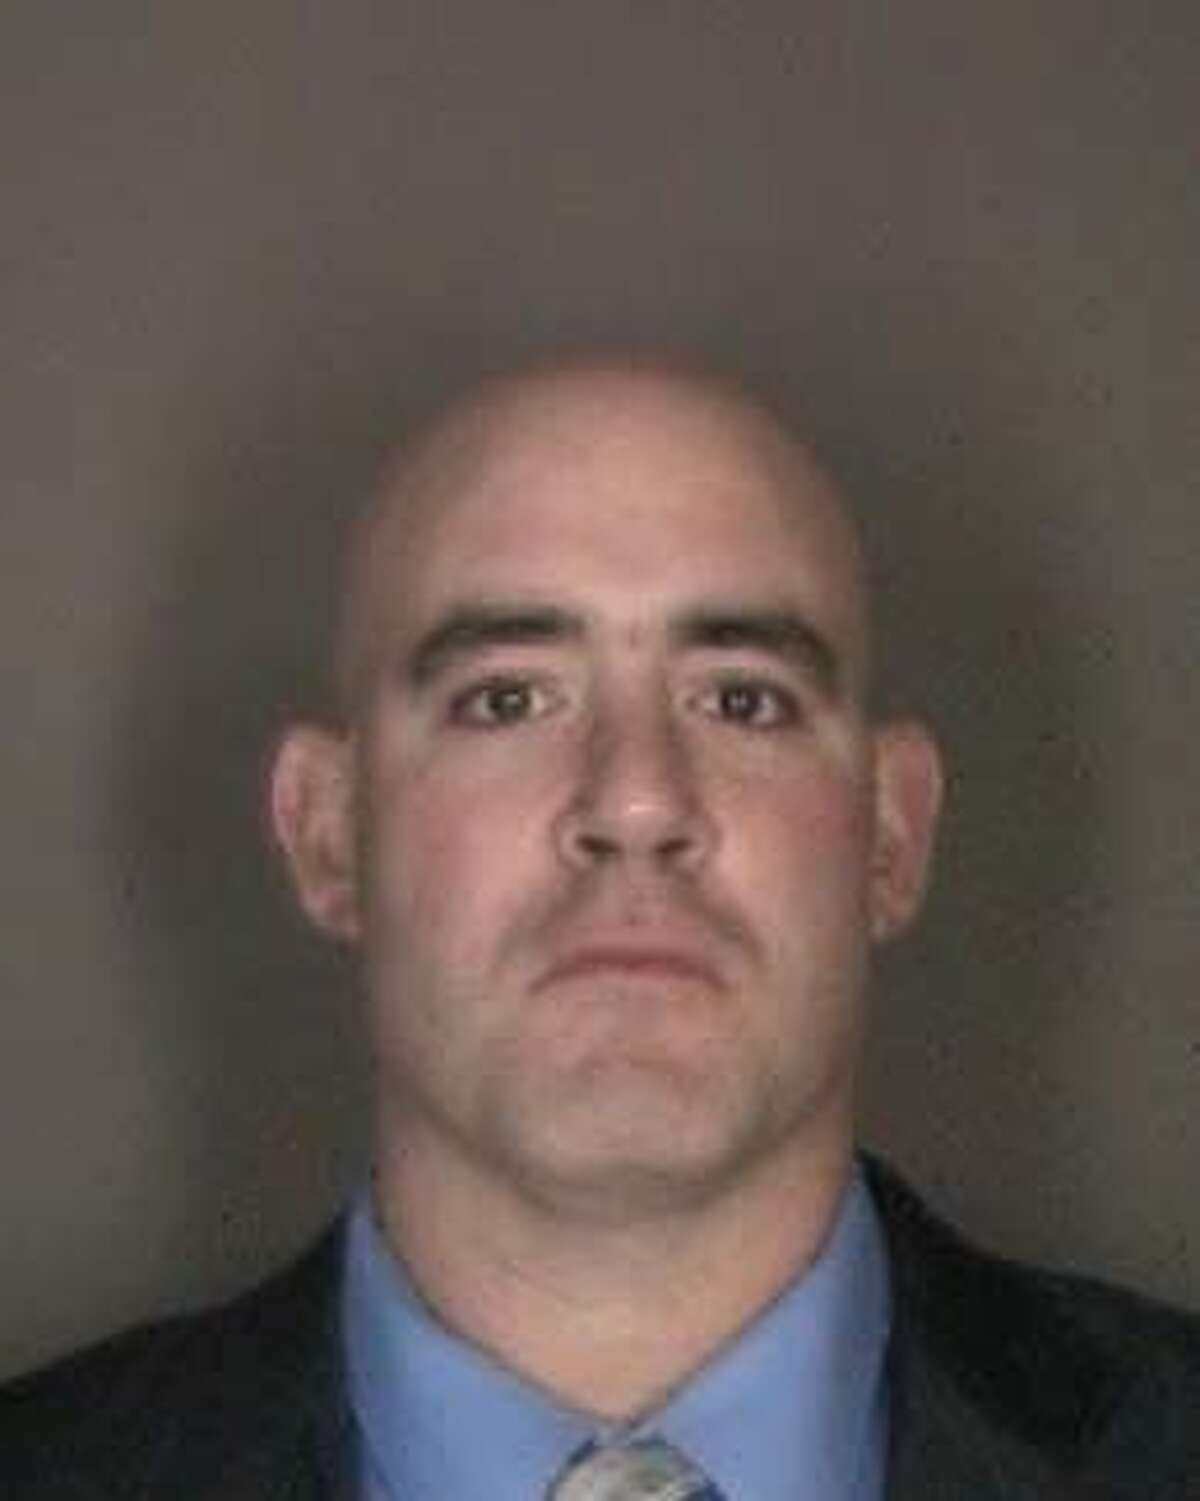 Erik Surridge (East Greenbush police photo)